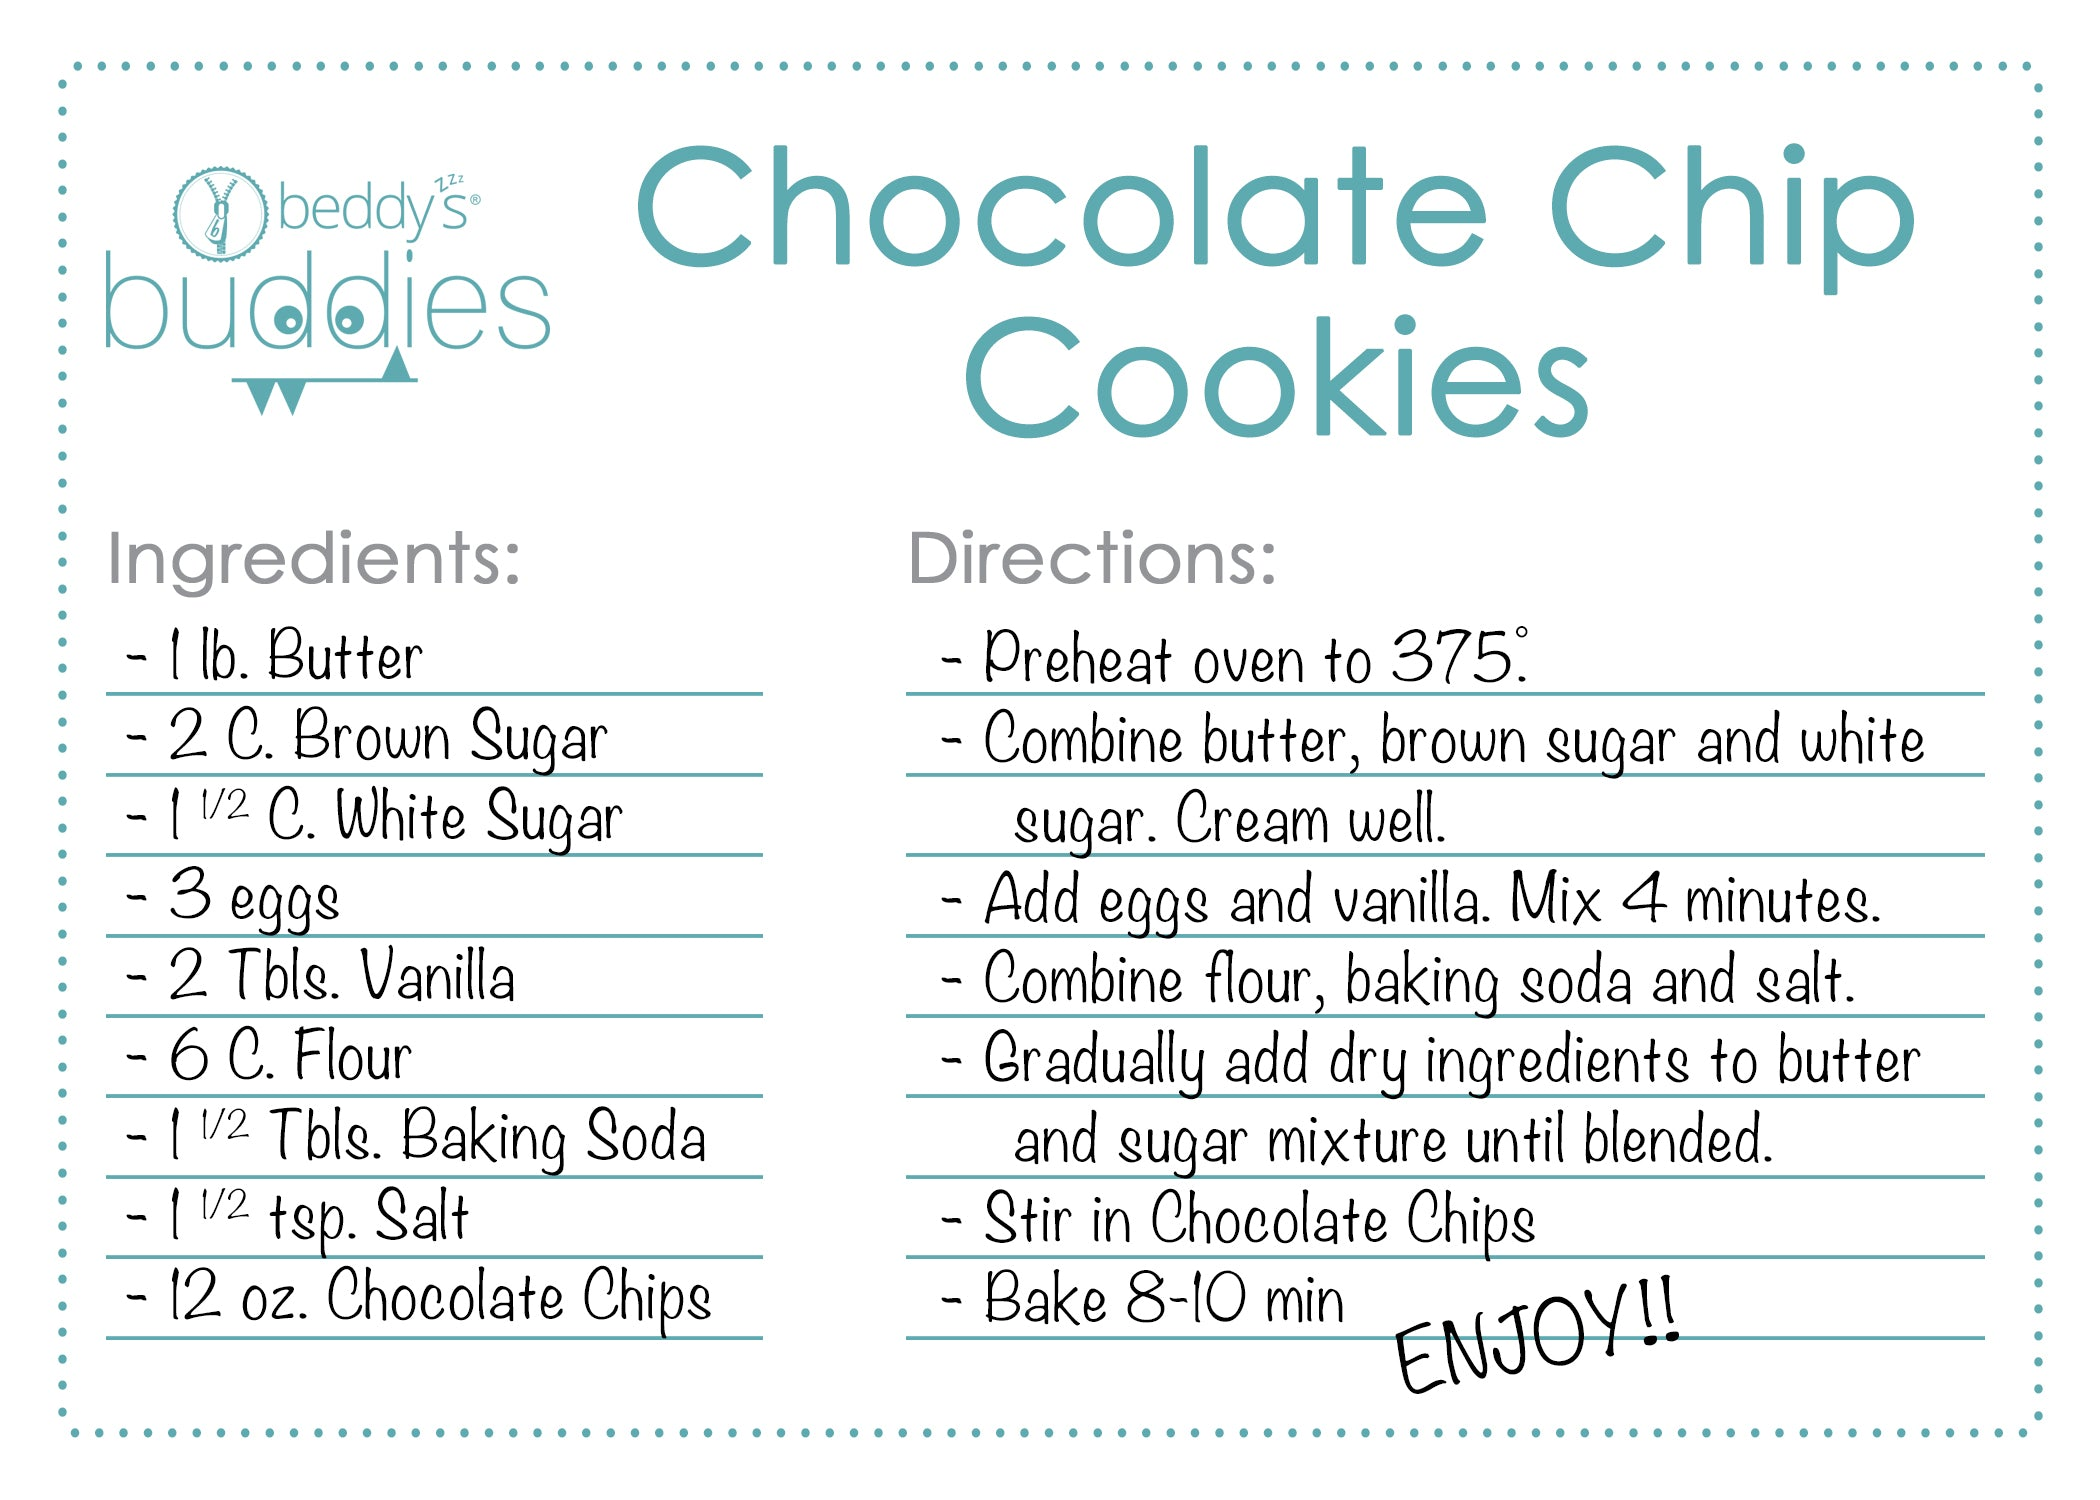 Beddy's Buddies Chocolate Chip Cookie Recipe